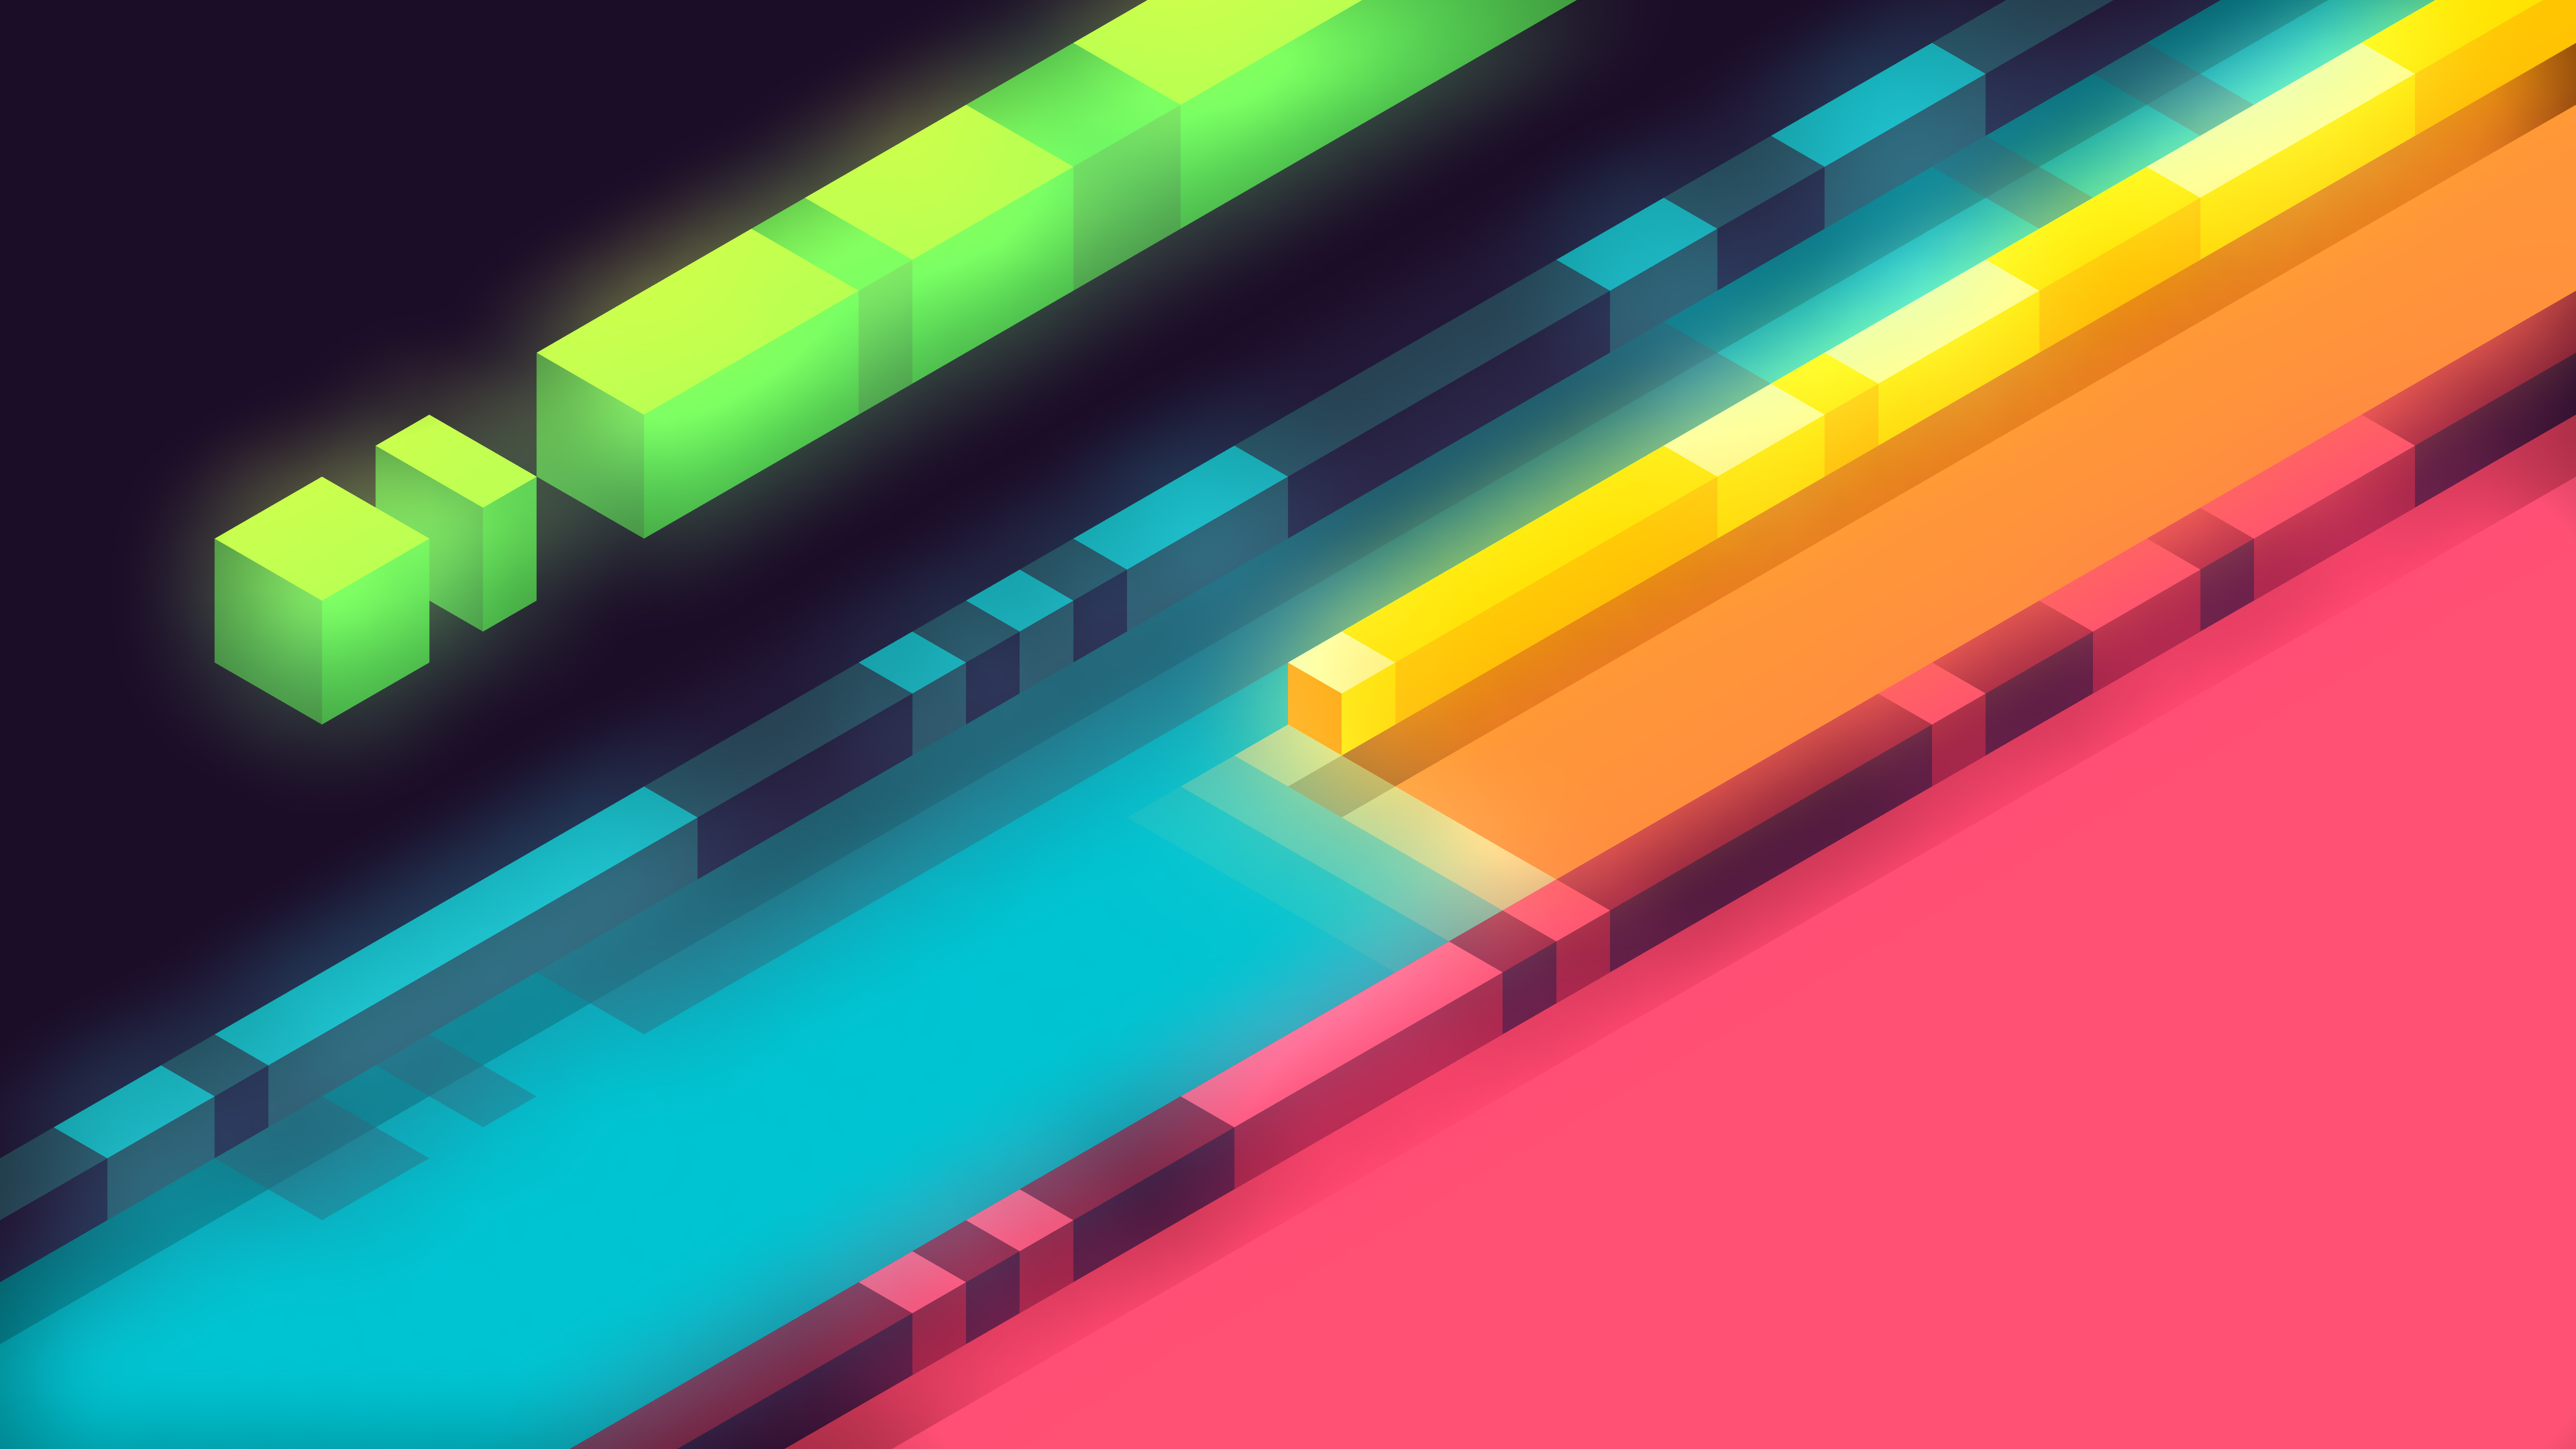 3d Abstract Colorful Shapes Minimalist 5k Hd 3d 4k